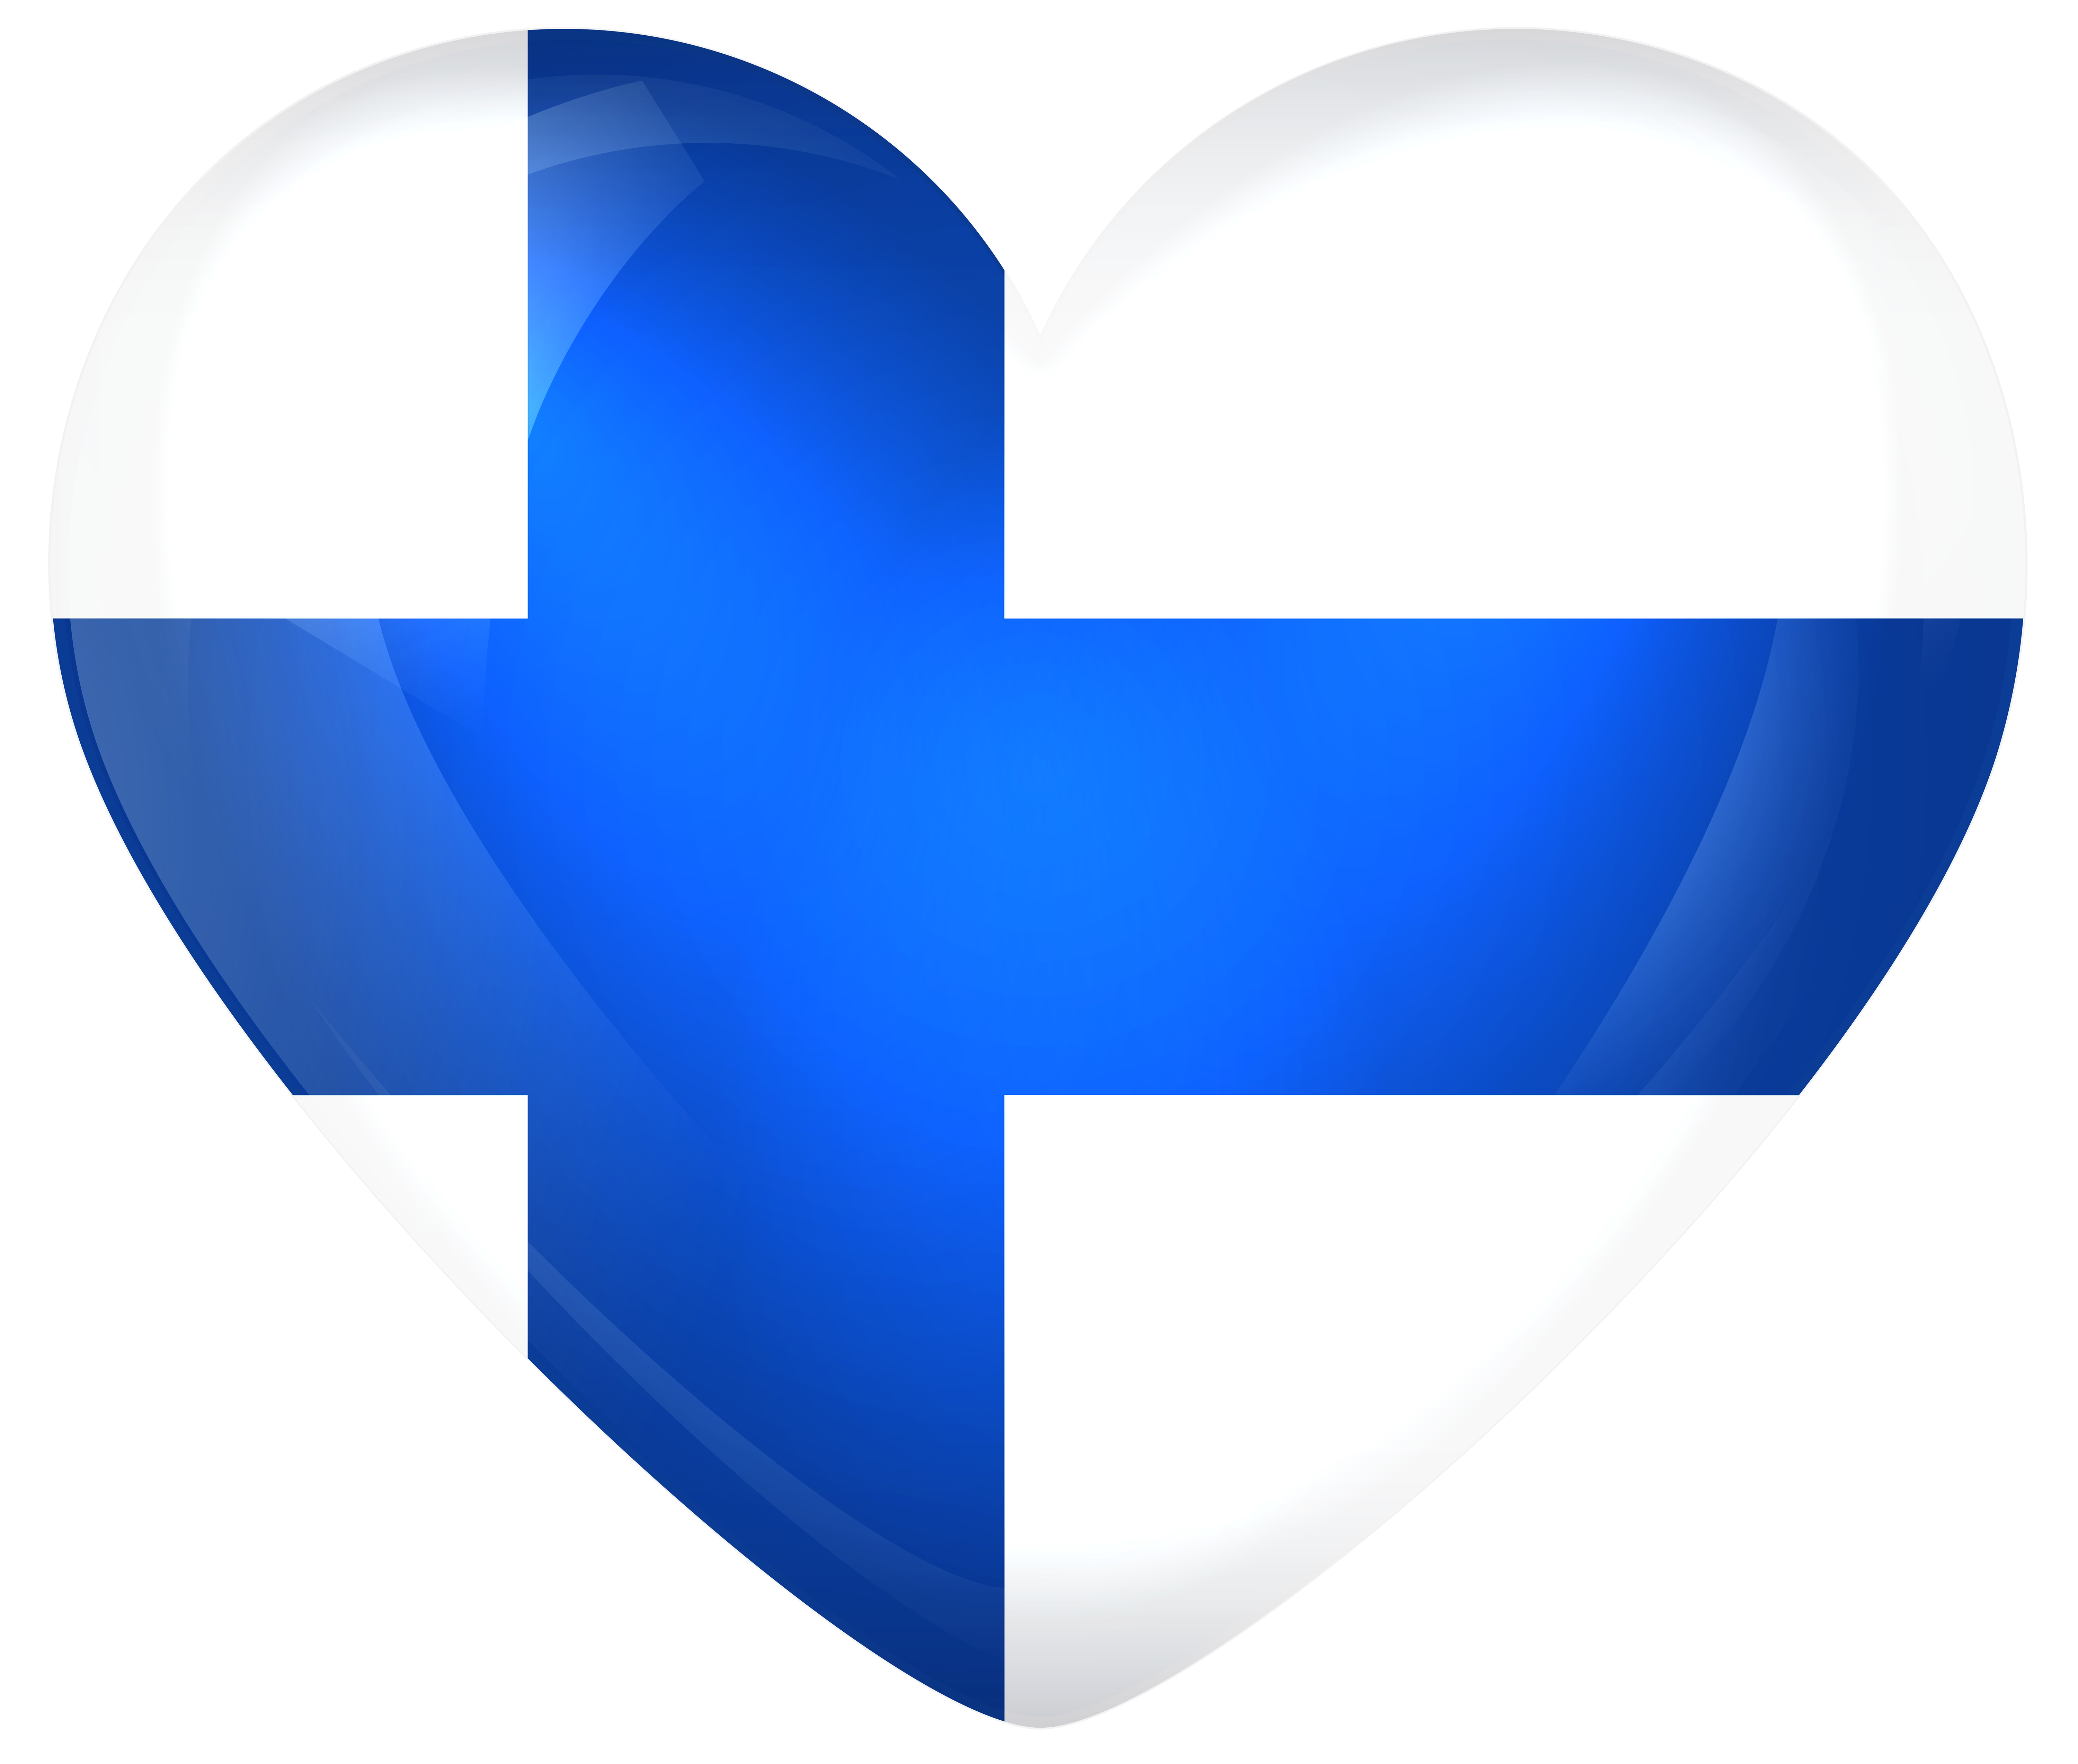 Finland_Large_Heart_Flag.png?m=1449183330.